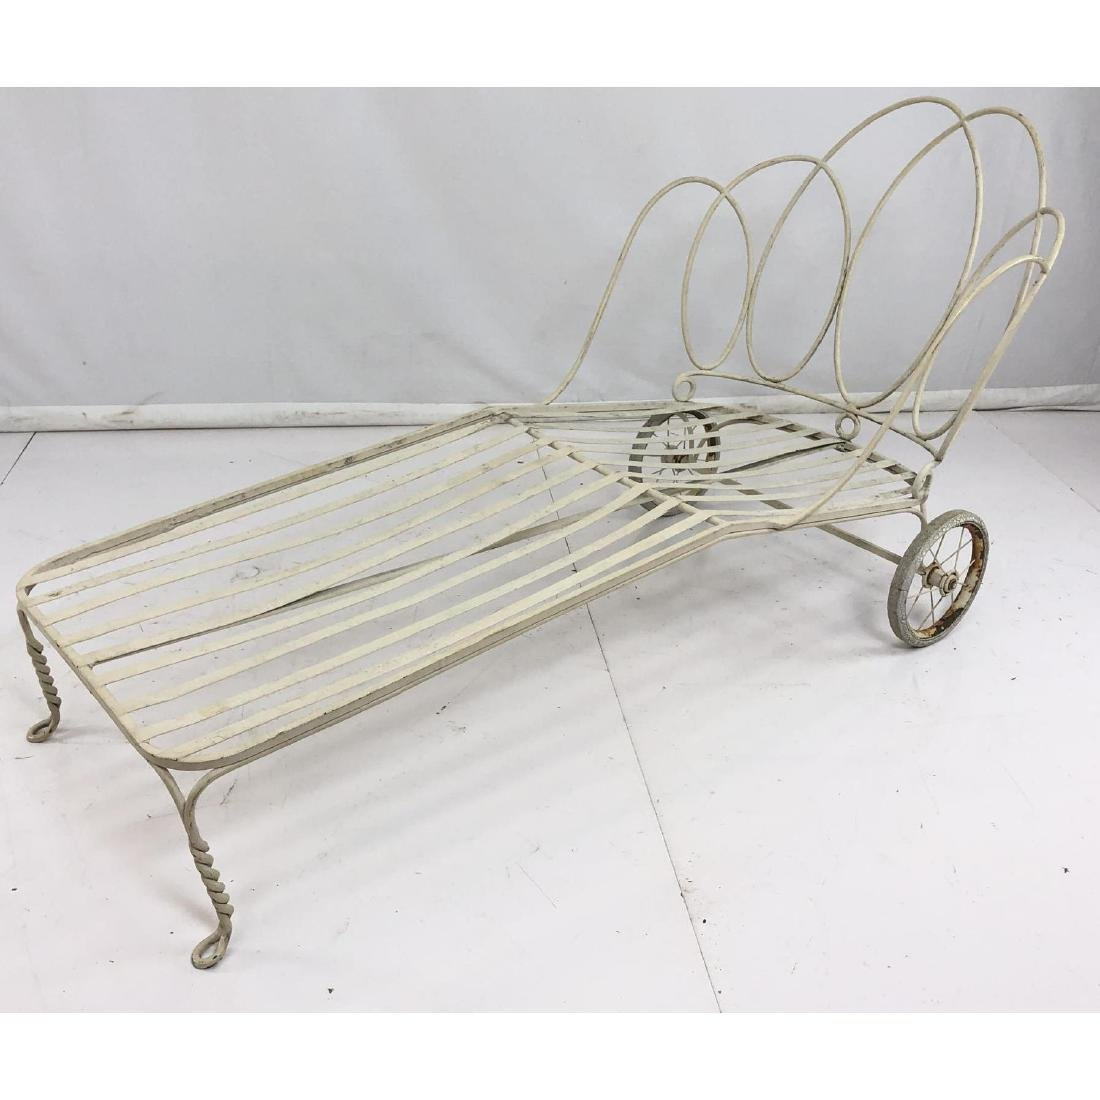 Antique Off White Iron Chaise Lounge. Decorative